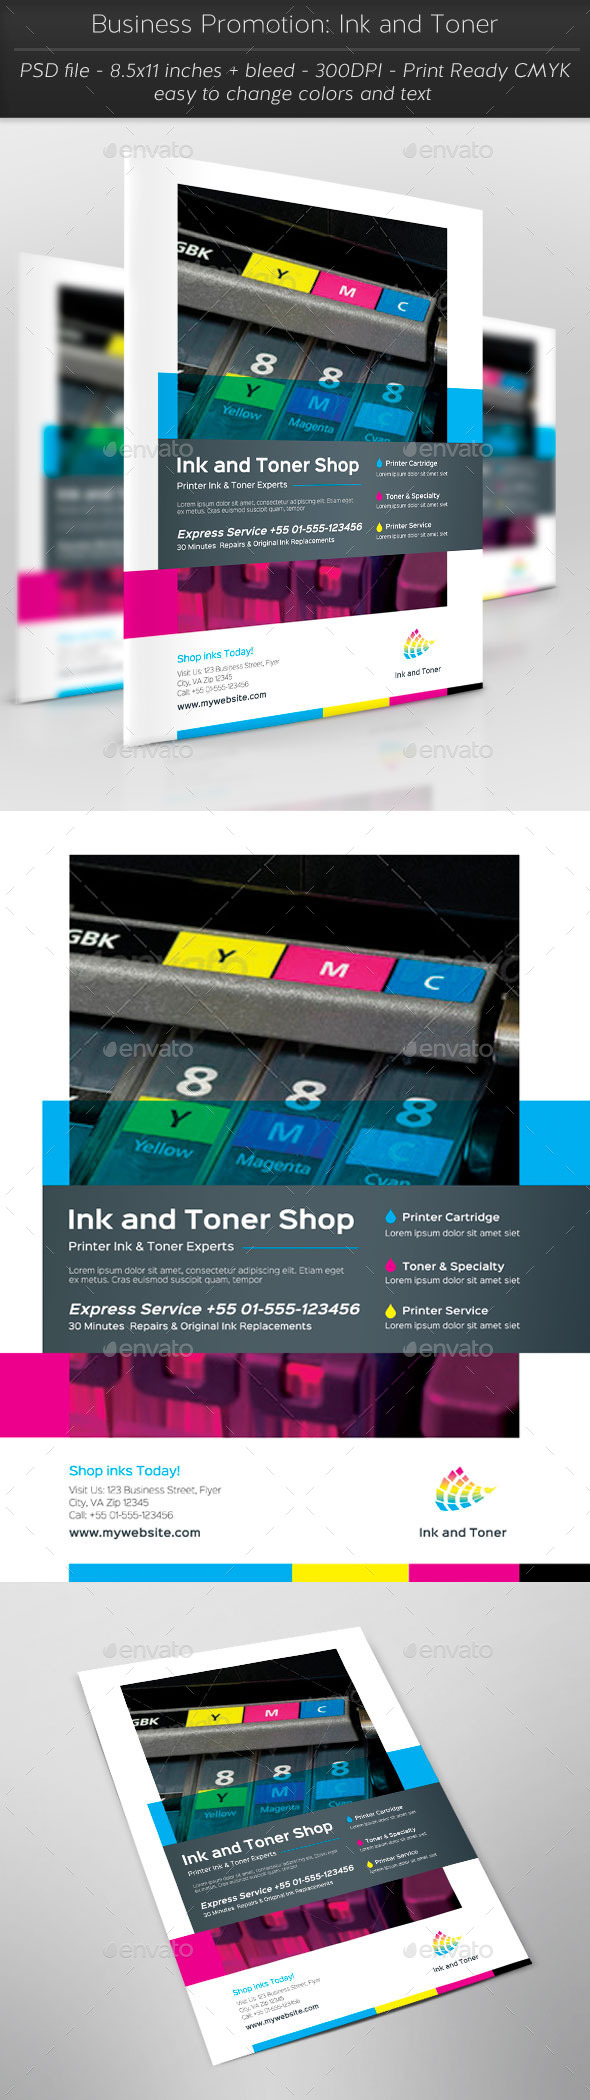 Business Promotion Ink and Toner